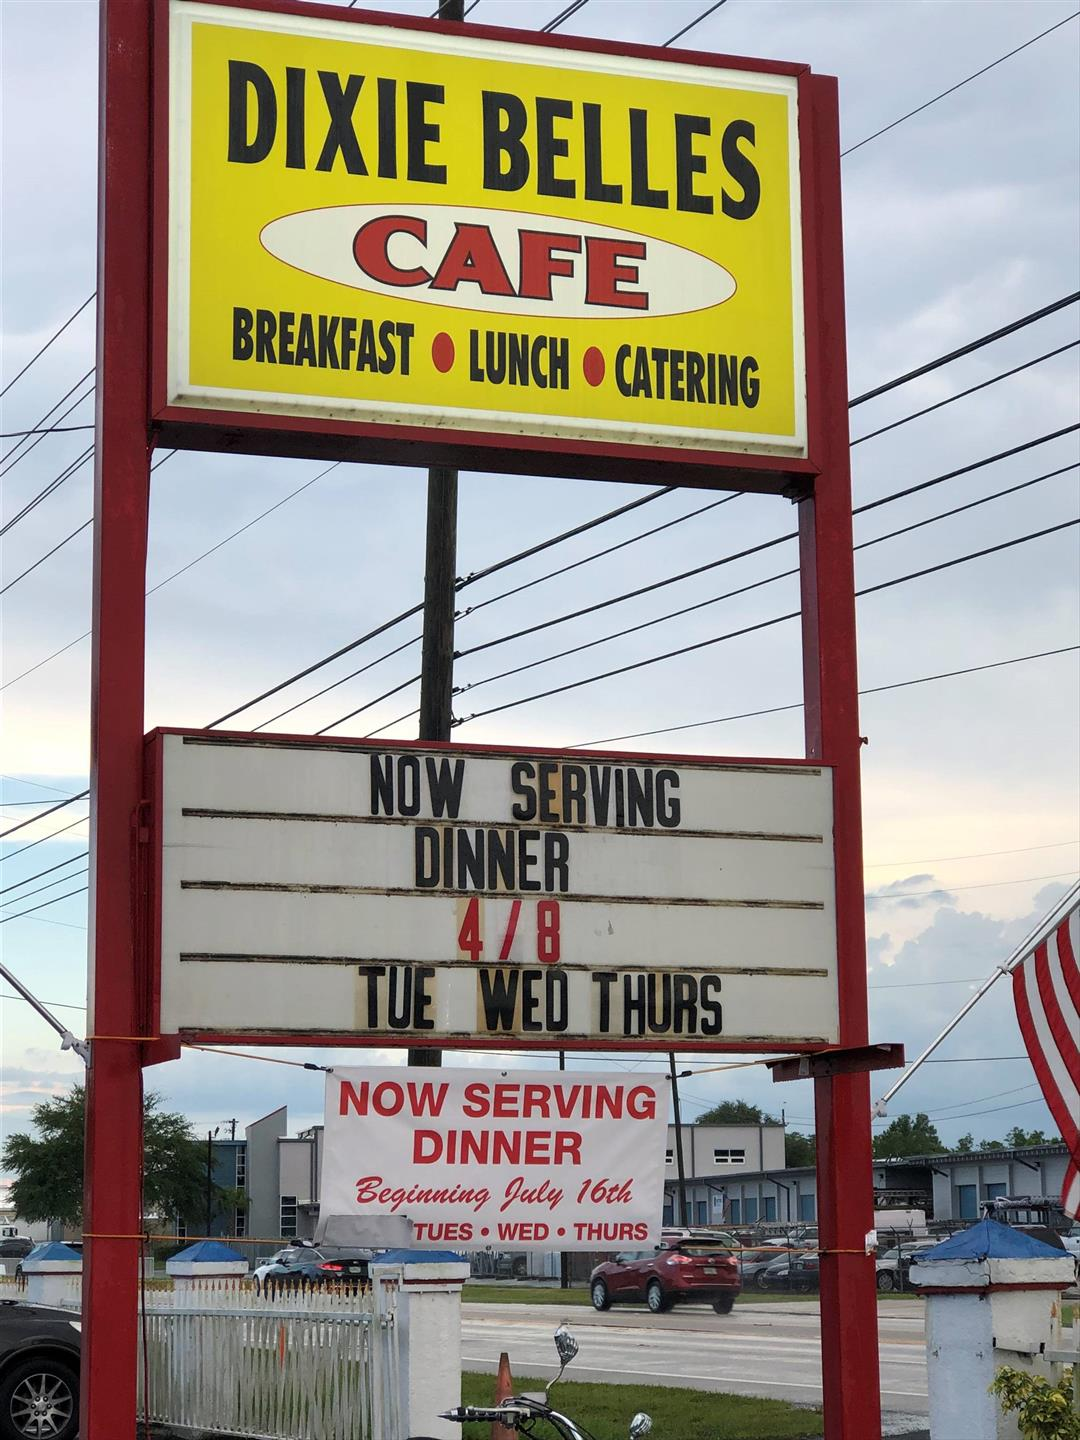 Dixie Belles Cafe Breakfast Lunch Catering Sign